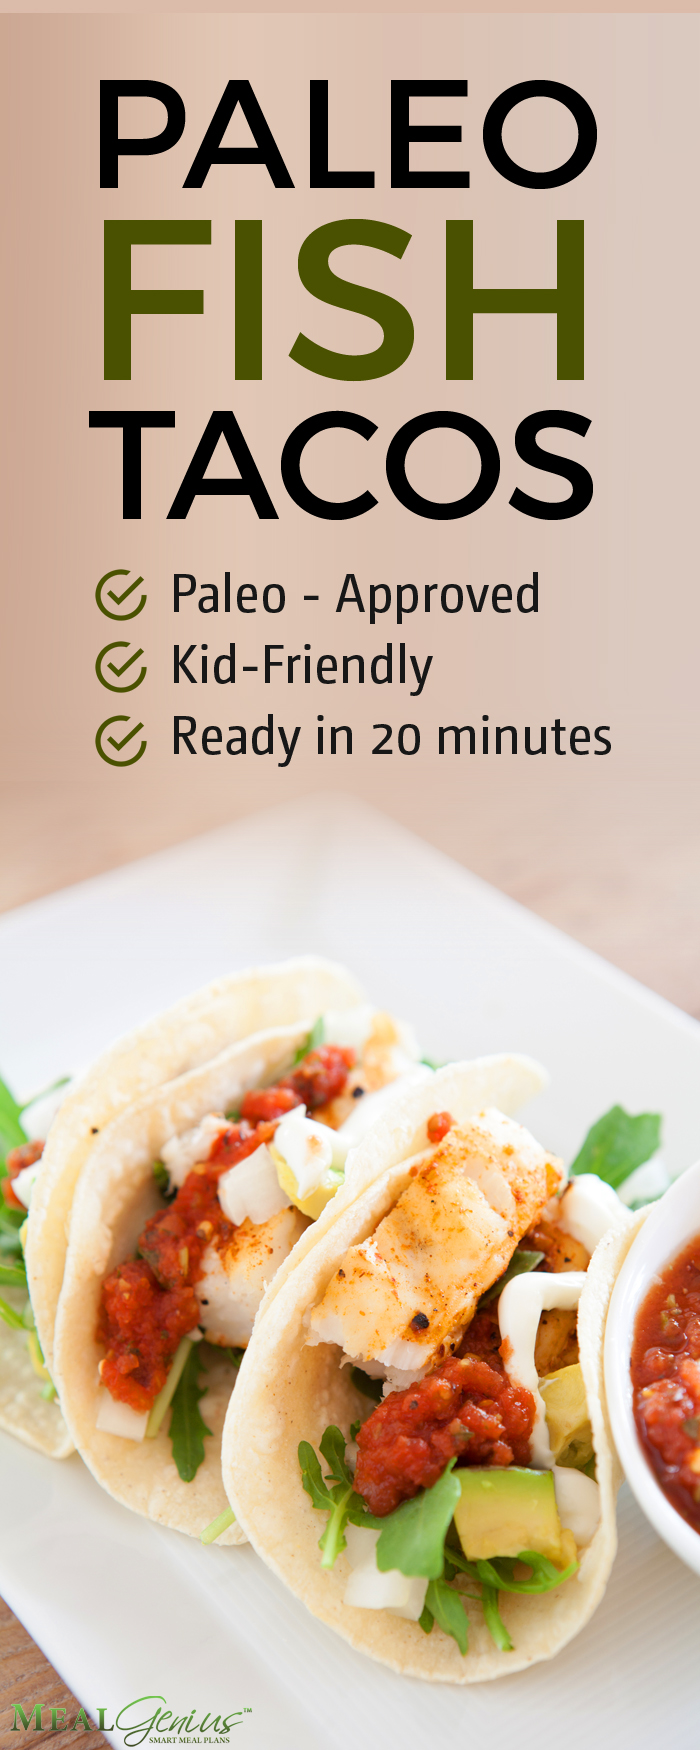 Paleo Fish Tacos - Meal Genius